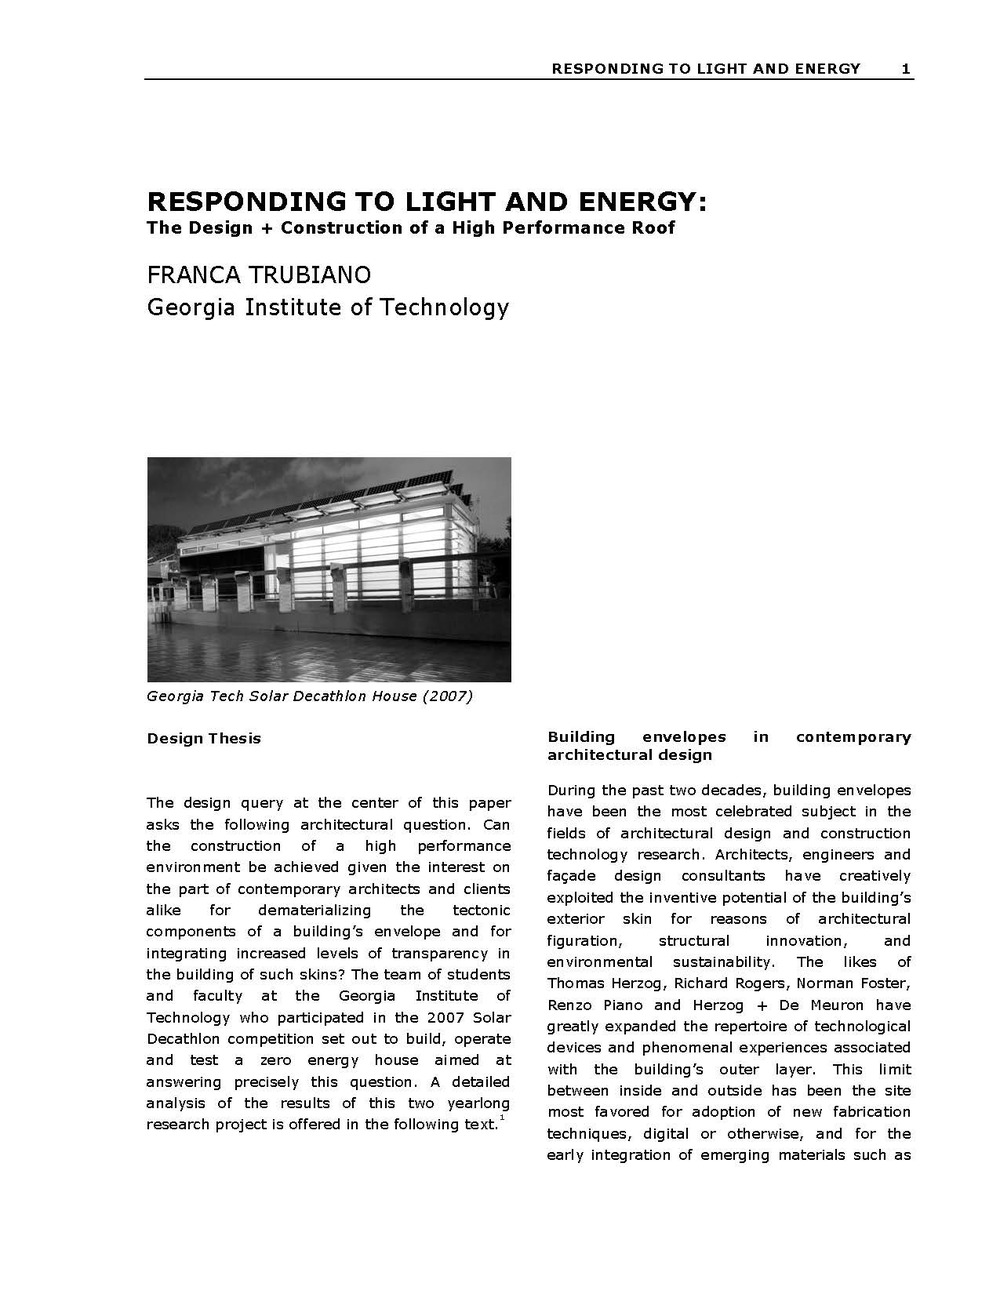 TRUBIANO- Responding to light and energy_Page_1.jpg